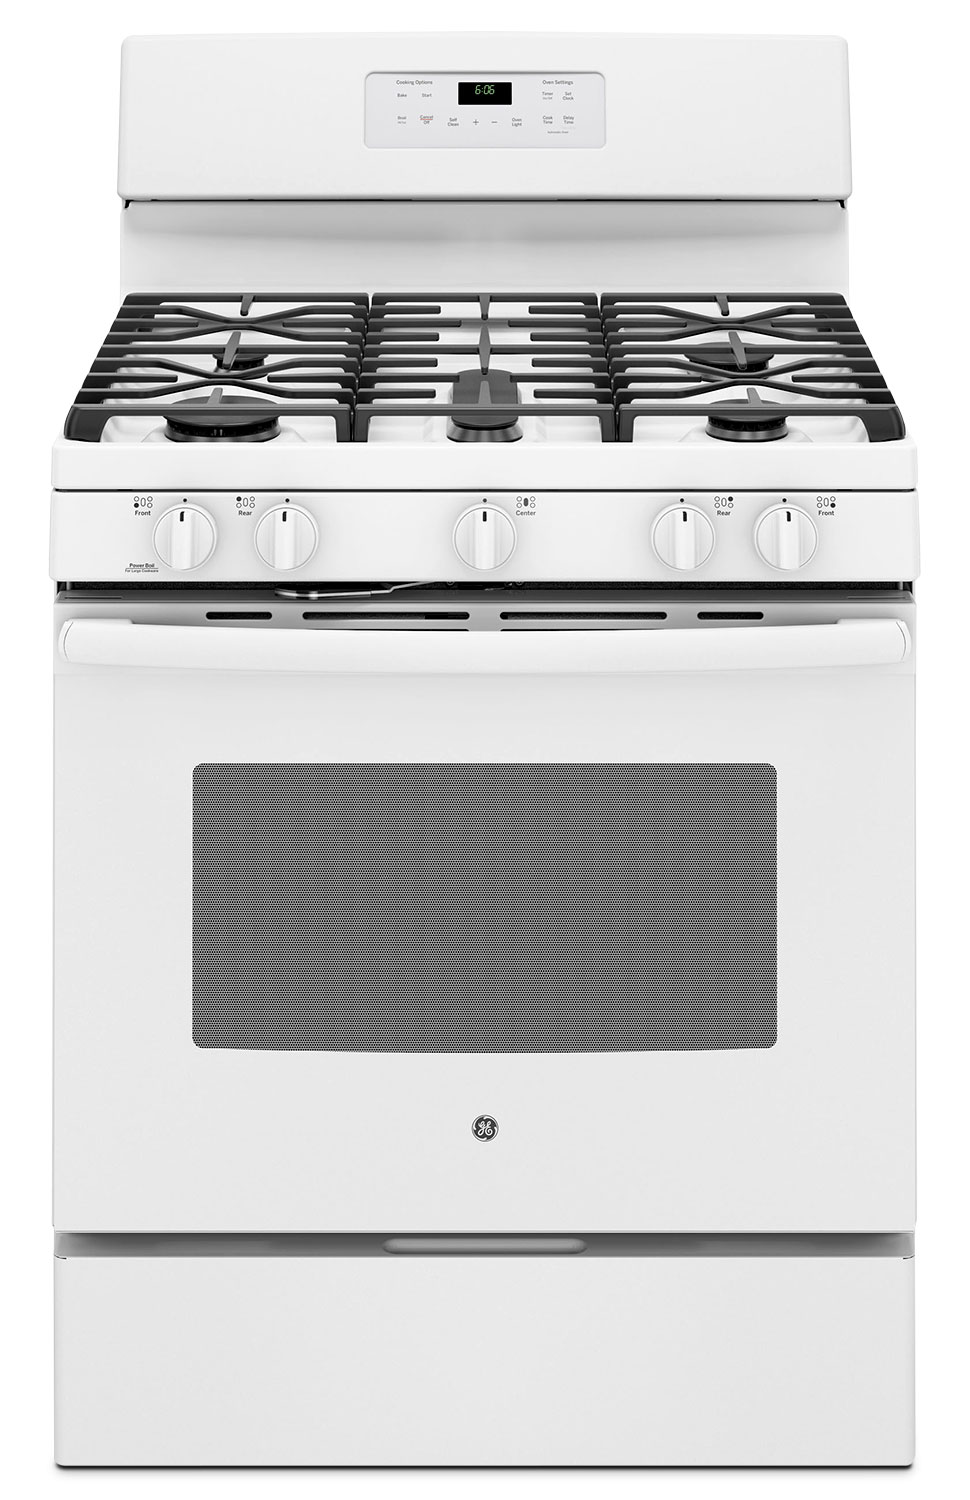 Cooking Products - GE 5.0 Cu. Ft. Freestanding Gas Range – JCGB660DEJWW